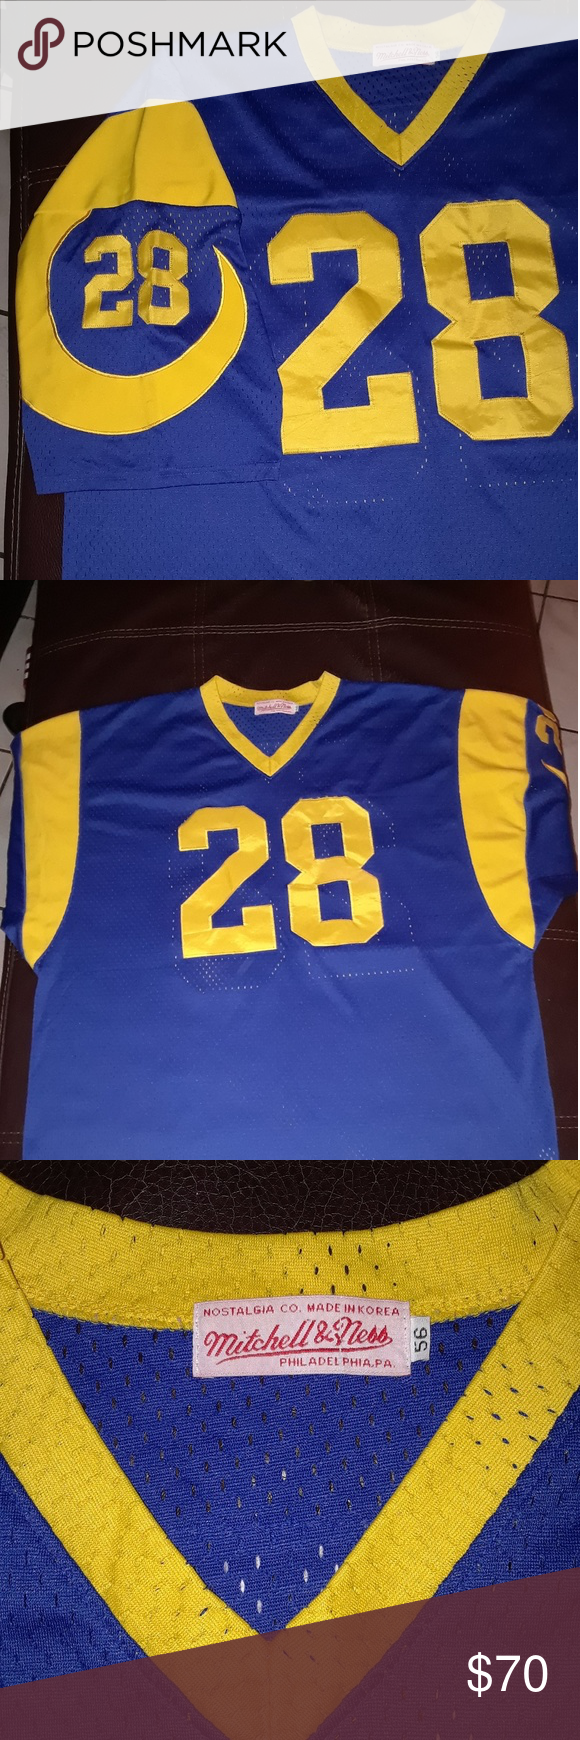 outlet store 48861 3b06f LA rams jersey Marshall faulk throwback jersey Mitchell ...